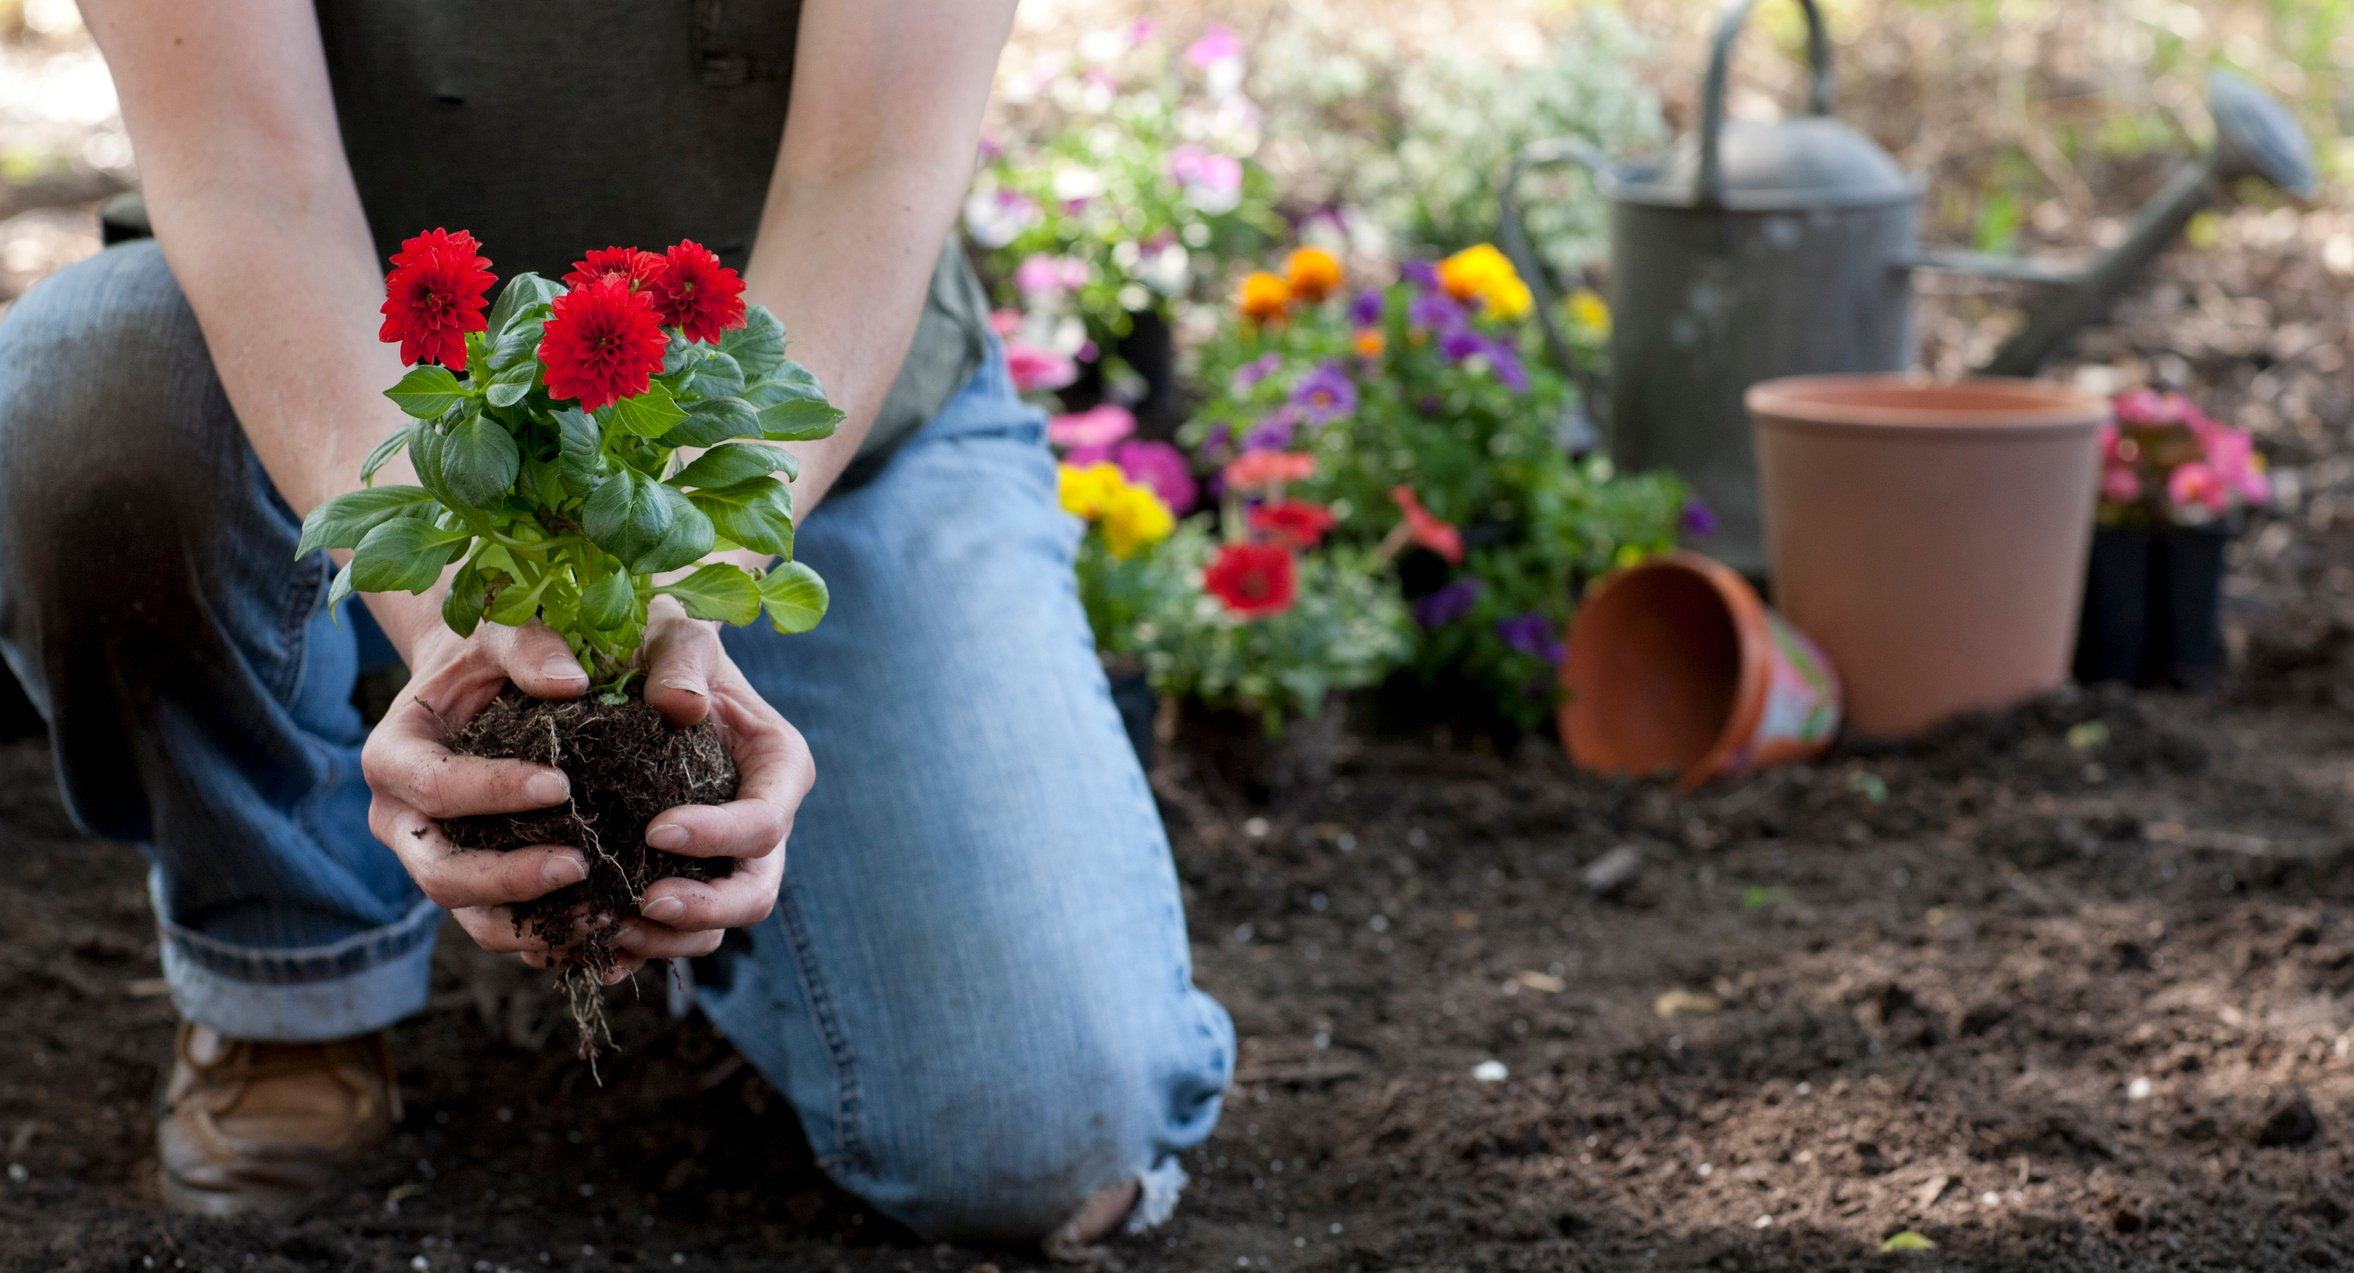 Woman gardening in springtime and holding Dahlia flowers in her hands